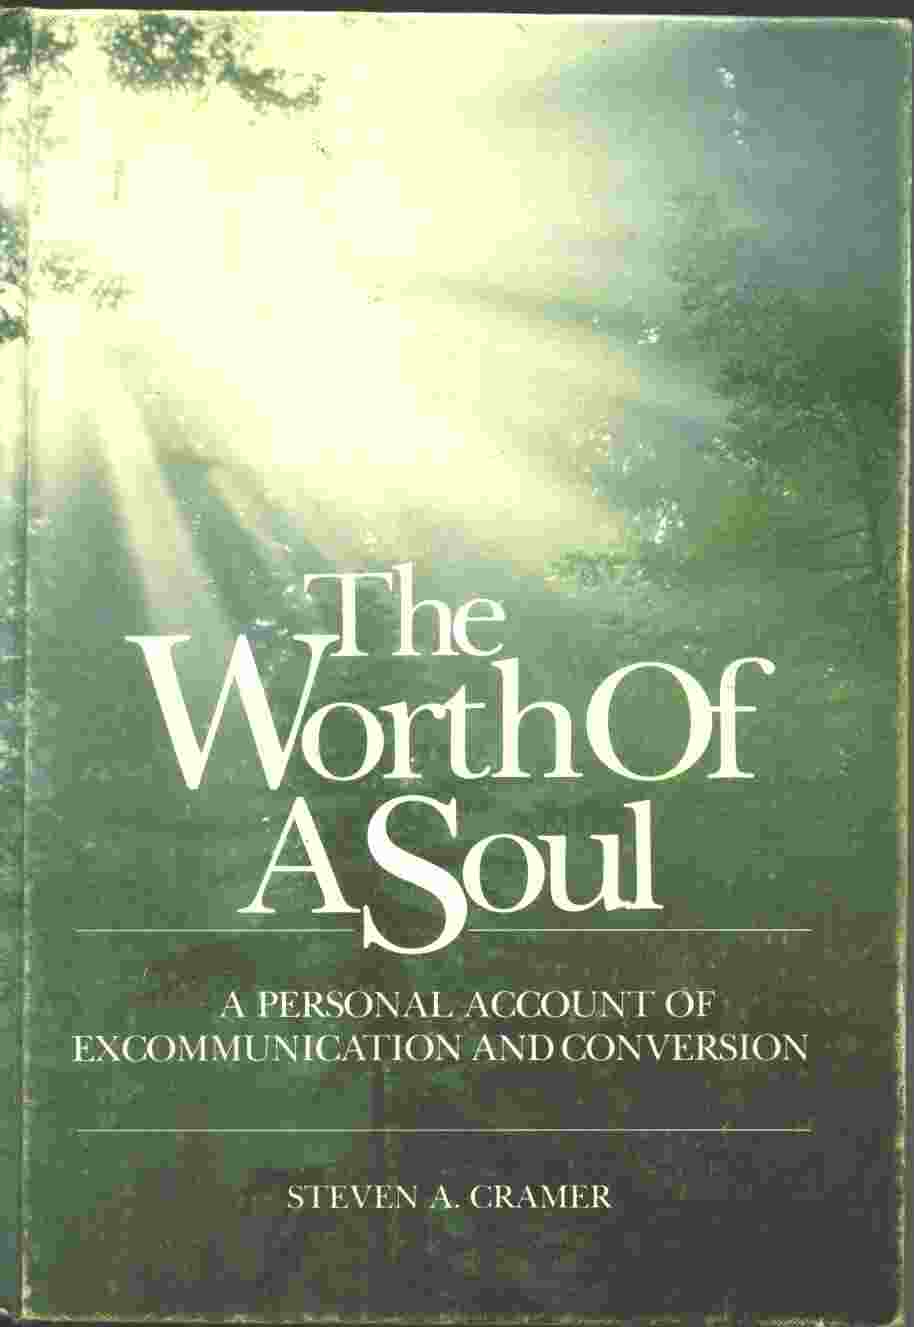 THE WORTH OF A SOUL - A Personal Account of Excommunication and Conversion, Cramer, Steven A